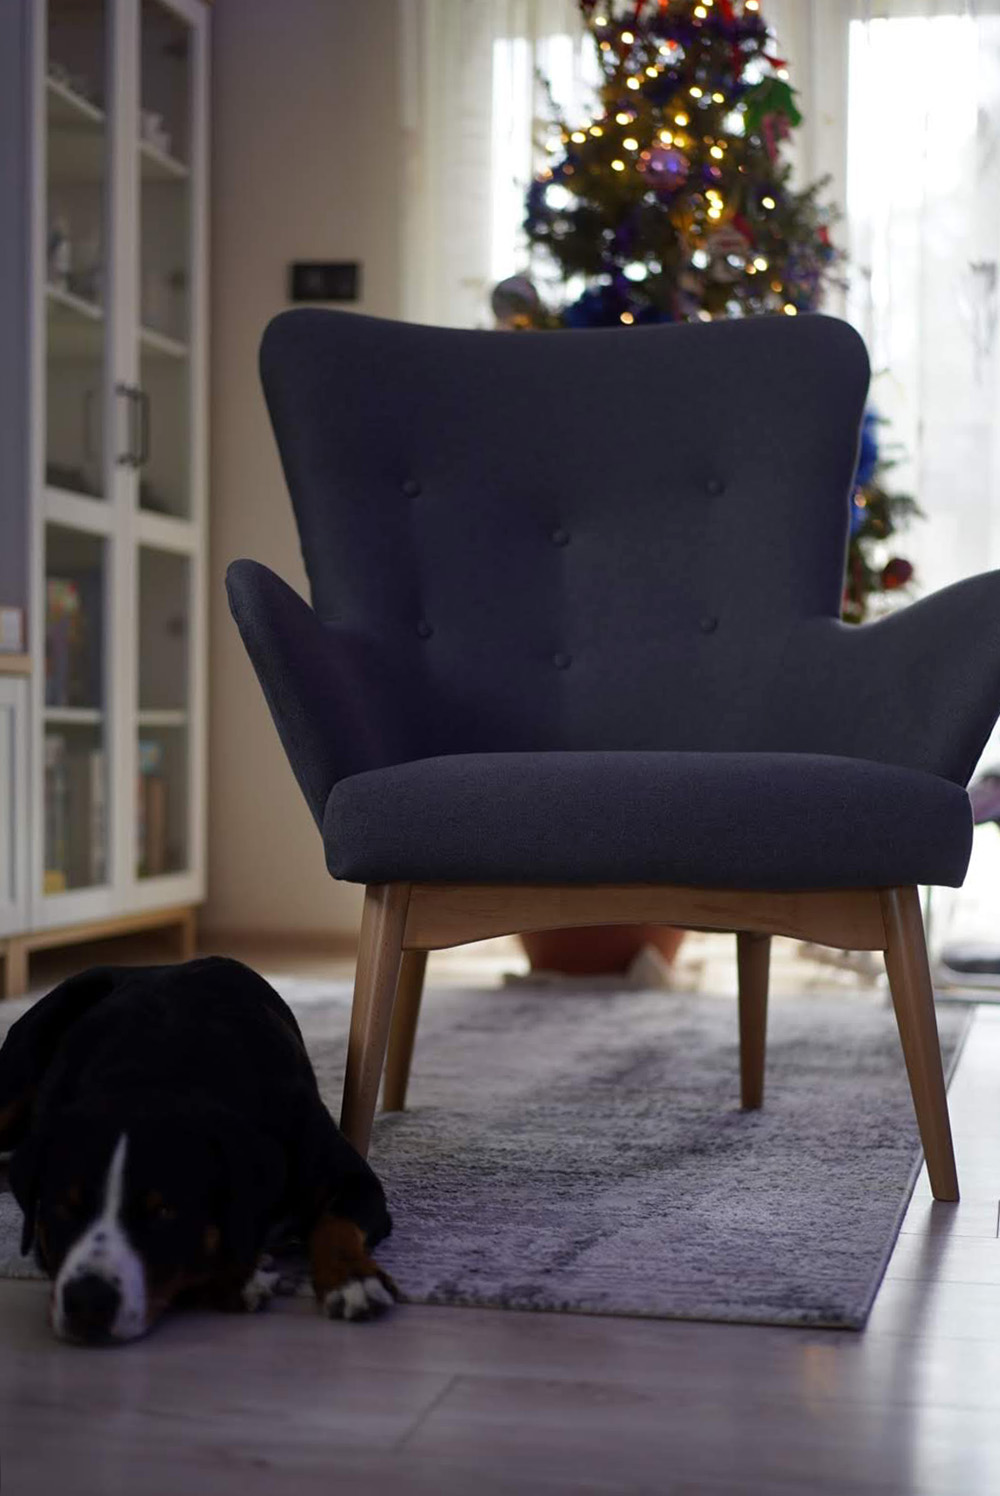 Savano Armchair from @chary-marty.co.uk